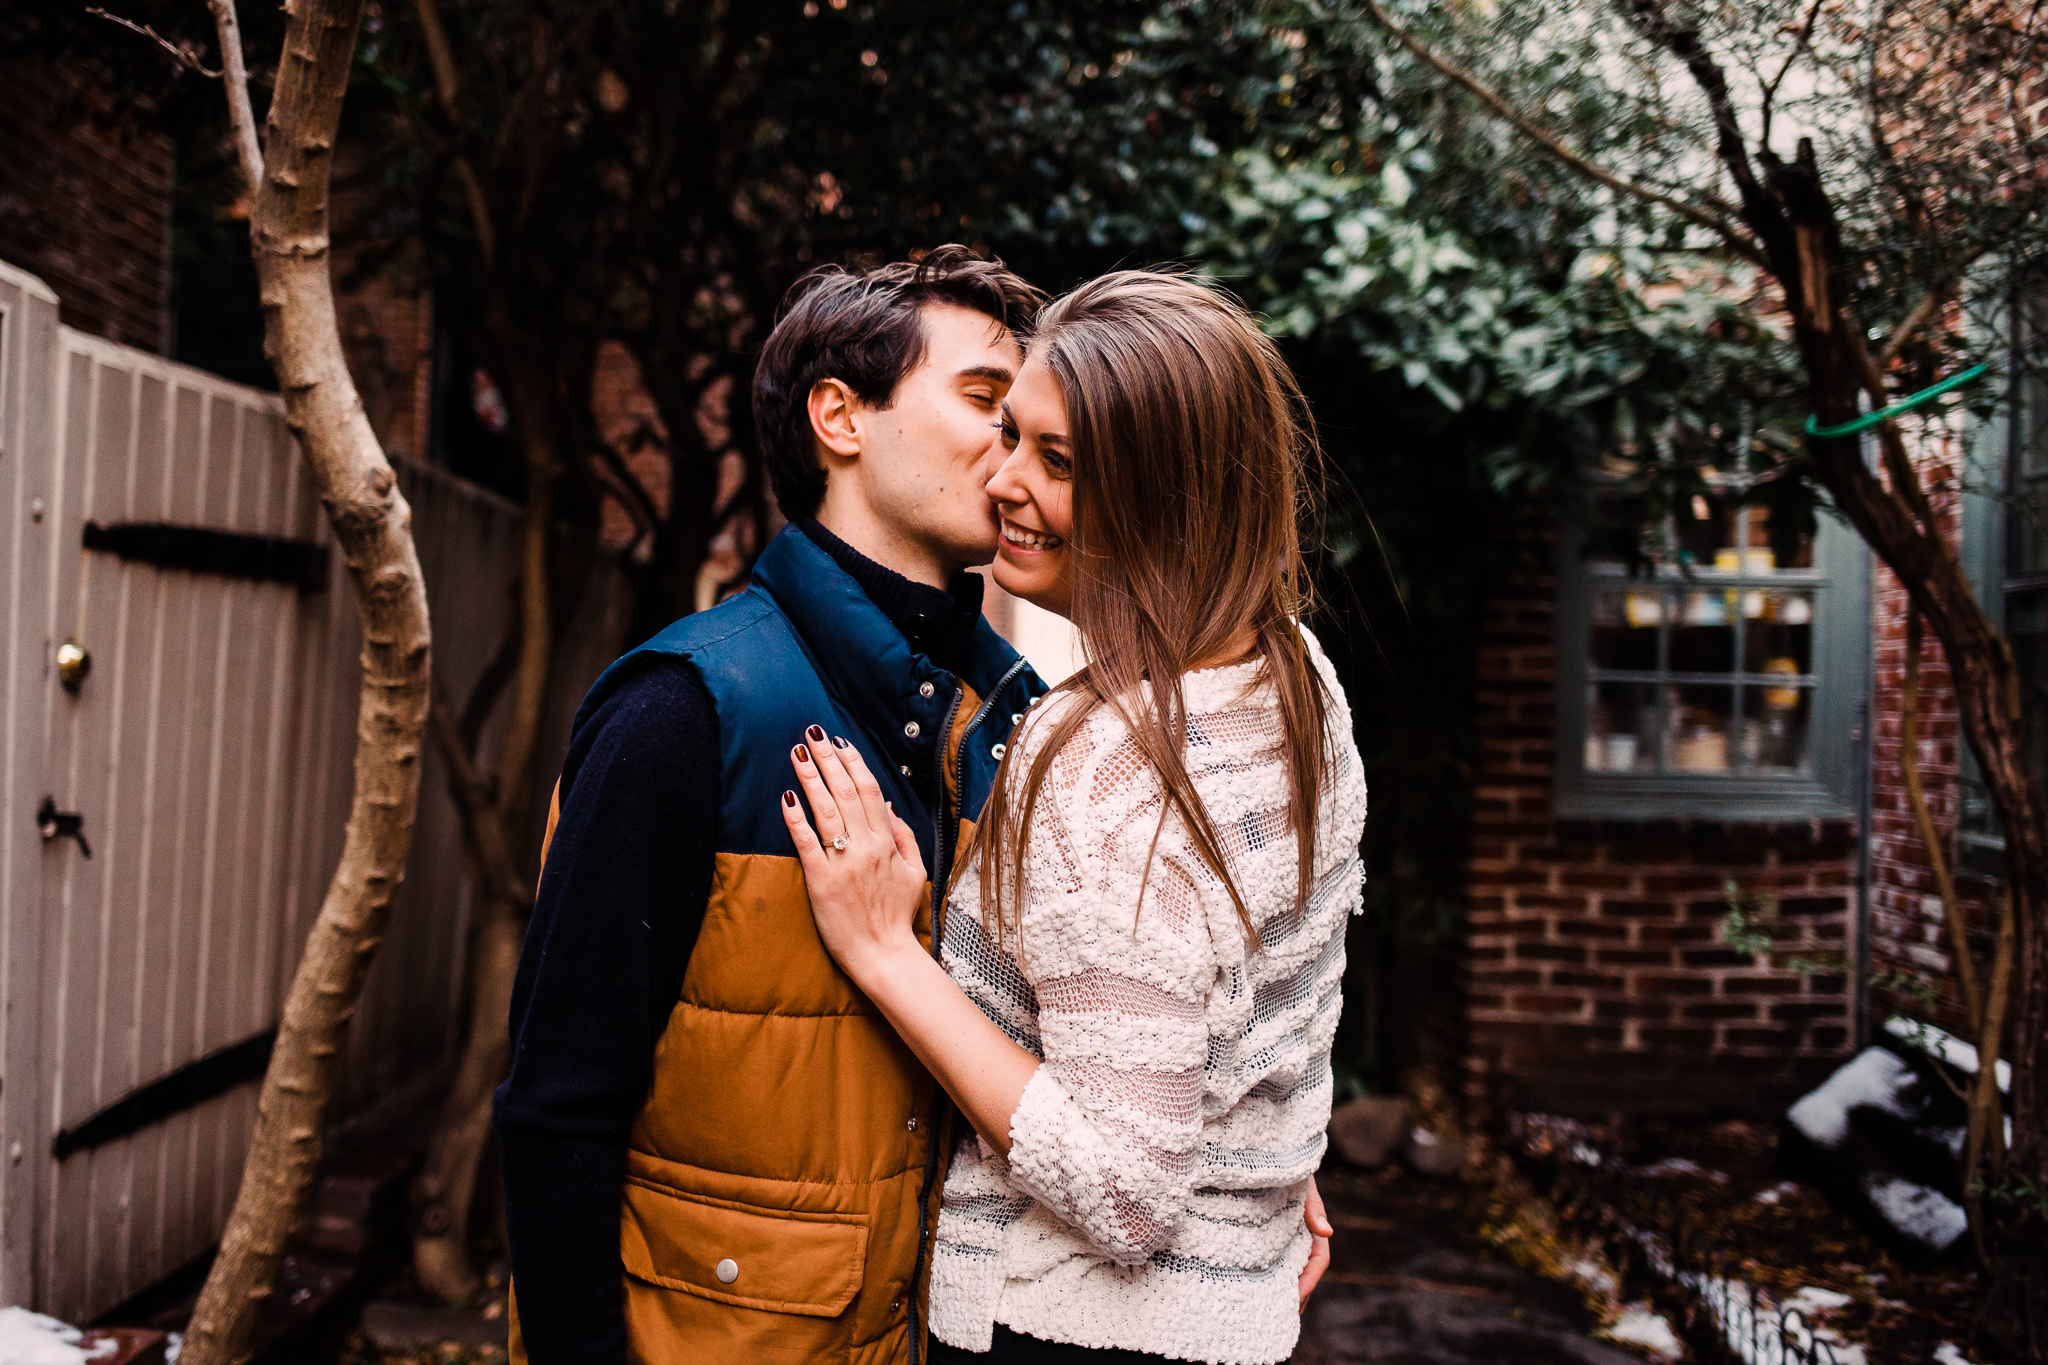 An Engagement photograph in an alleyway. Green leaves are behind the man and woman. The woman has a white sweater on and is smiling. The man has a blue and yellow vest on and is kissing the woman on the cheek. Photo by syracuse wedding photographer calypso rae photography.